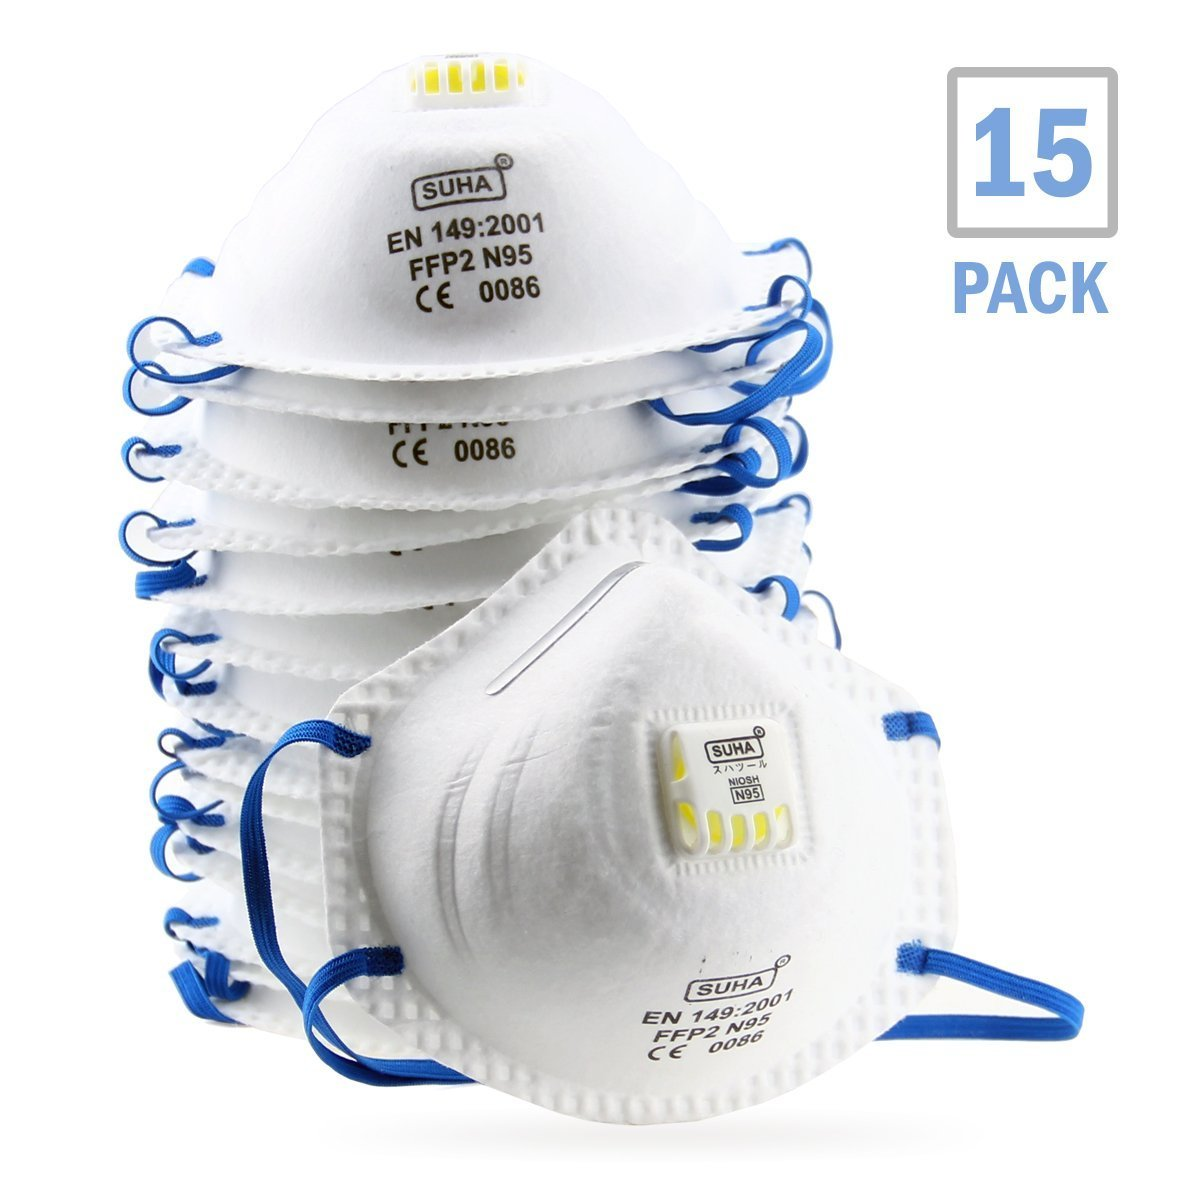 DCM Particulate Respirator N95 NIOSH Certified Safety Mask with Cool Exhalation Valve (15 Pack) Particle Dust Mask for Drywall Sanding, Grinding, Sawing, Painting and Insulating Particles